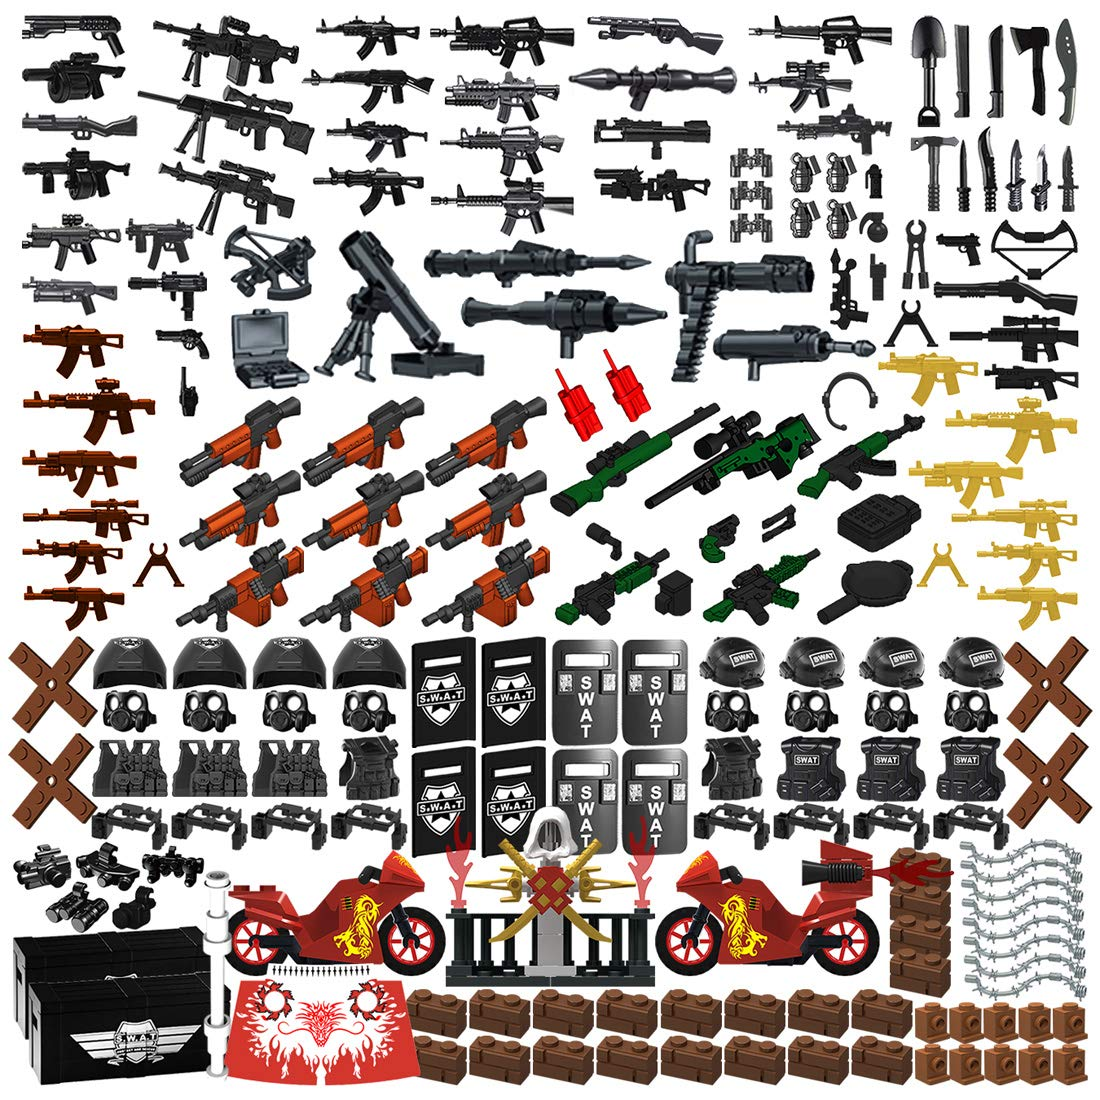 Nicolababe Weapon Pack 225 PCS Accessories Military Weapon Set Incl AK Assault Rifles and Motorcycles Designed for Minifigures Compatible with Minifigures of All Major Brands (SWAT Weapon)